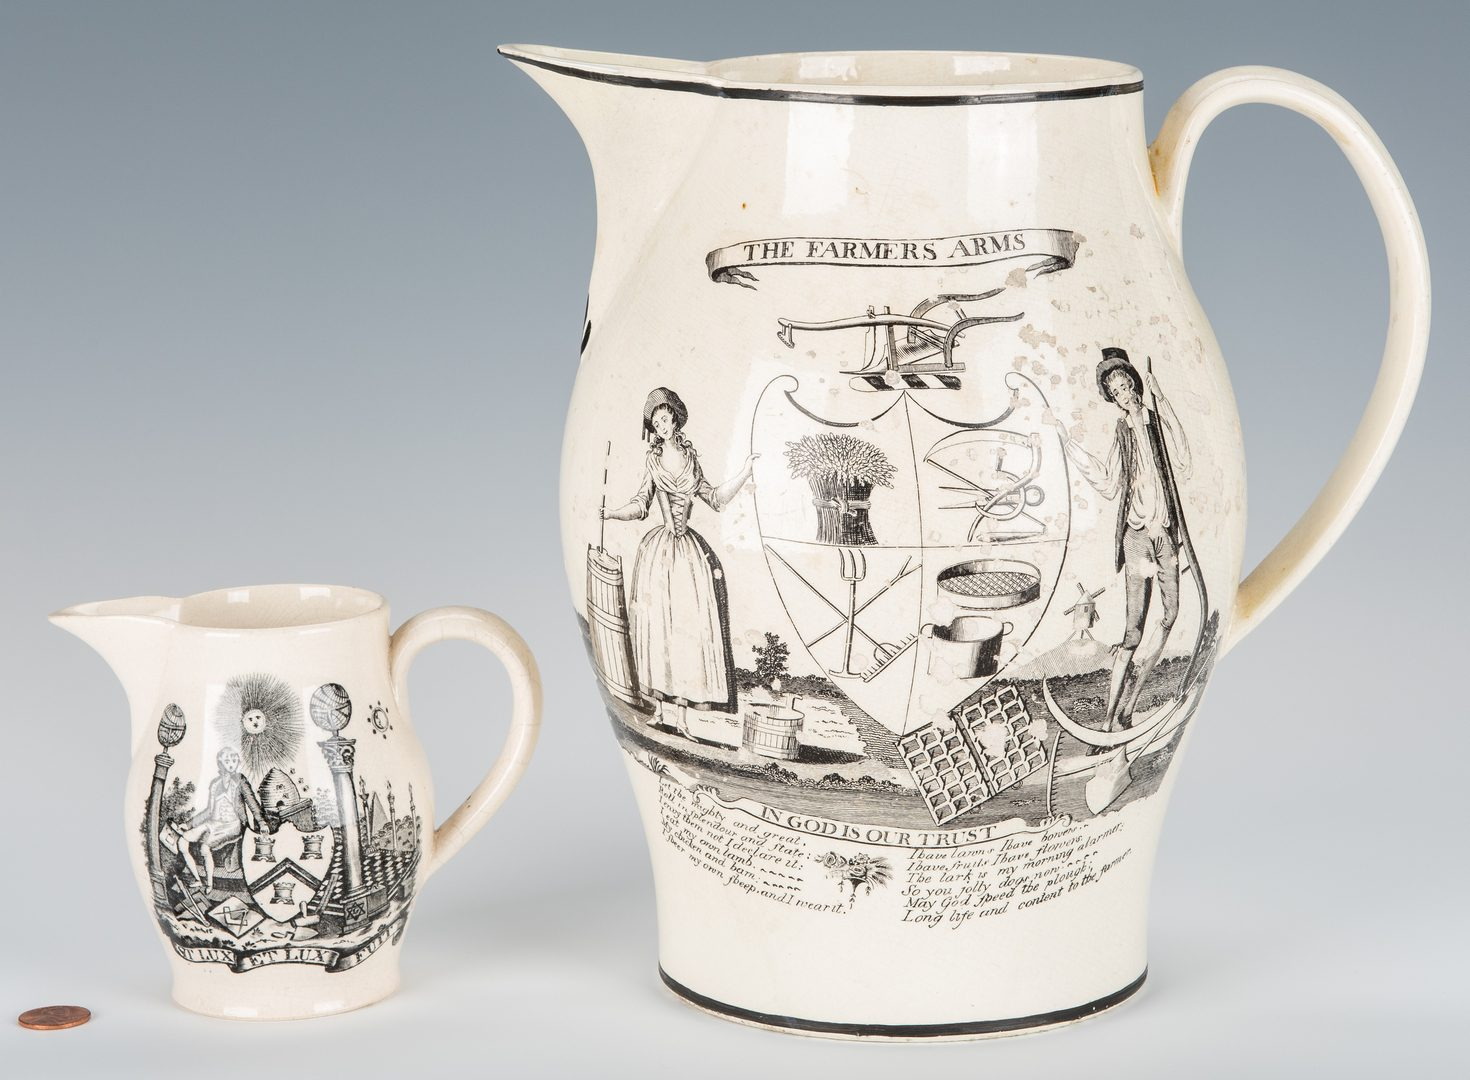 Lot 237: 2 American Historical Related Jugs, Masonic and Farmers' Arms